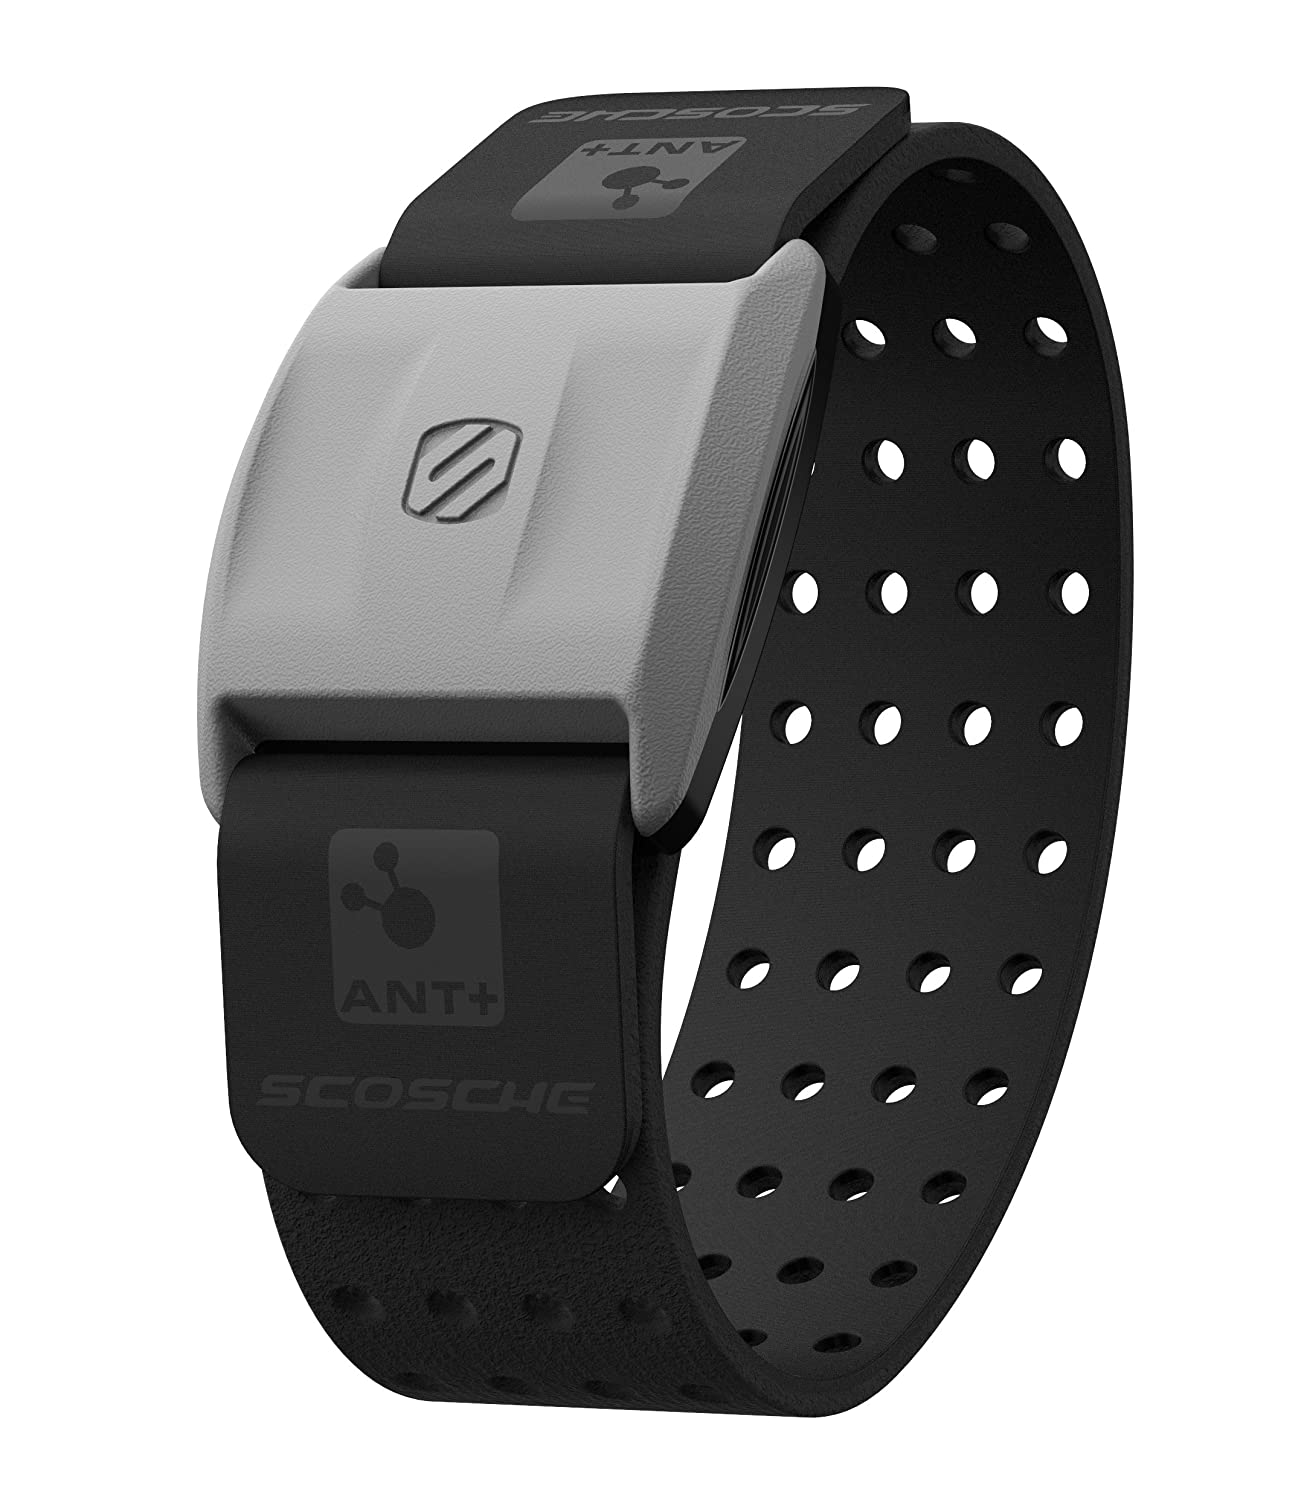 and Bluetooth Smart Black RTHM1.9 Heart Rate Monitor Armband Scosche RHYTHM Optical Heart Rate Armband Monitor With Dual Band Radio ANT